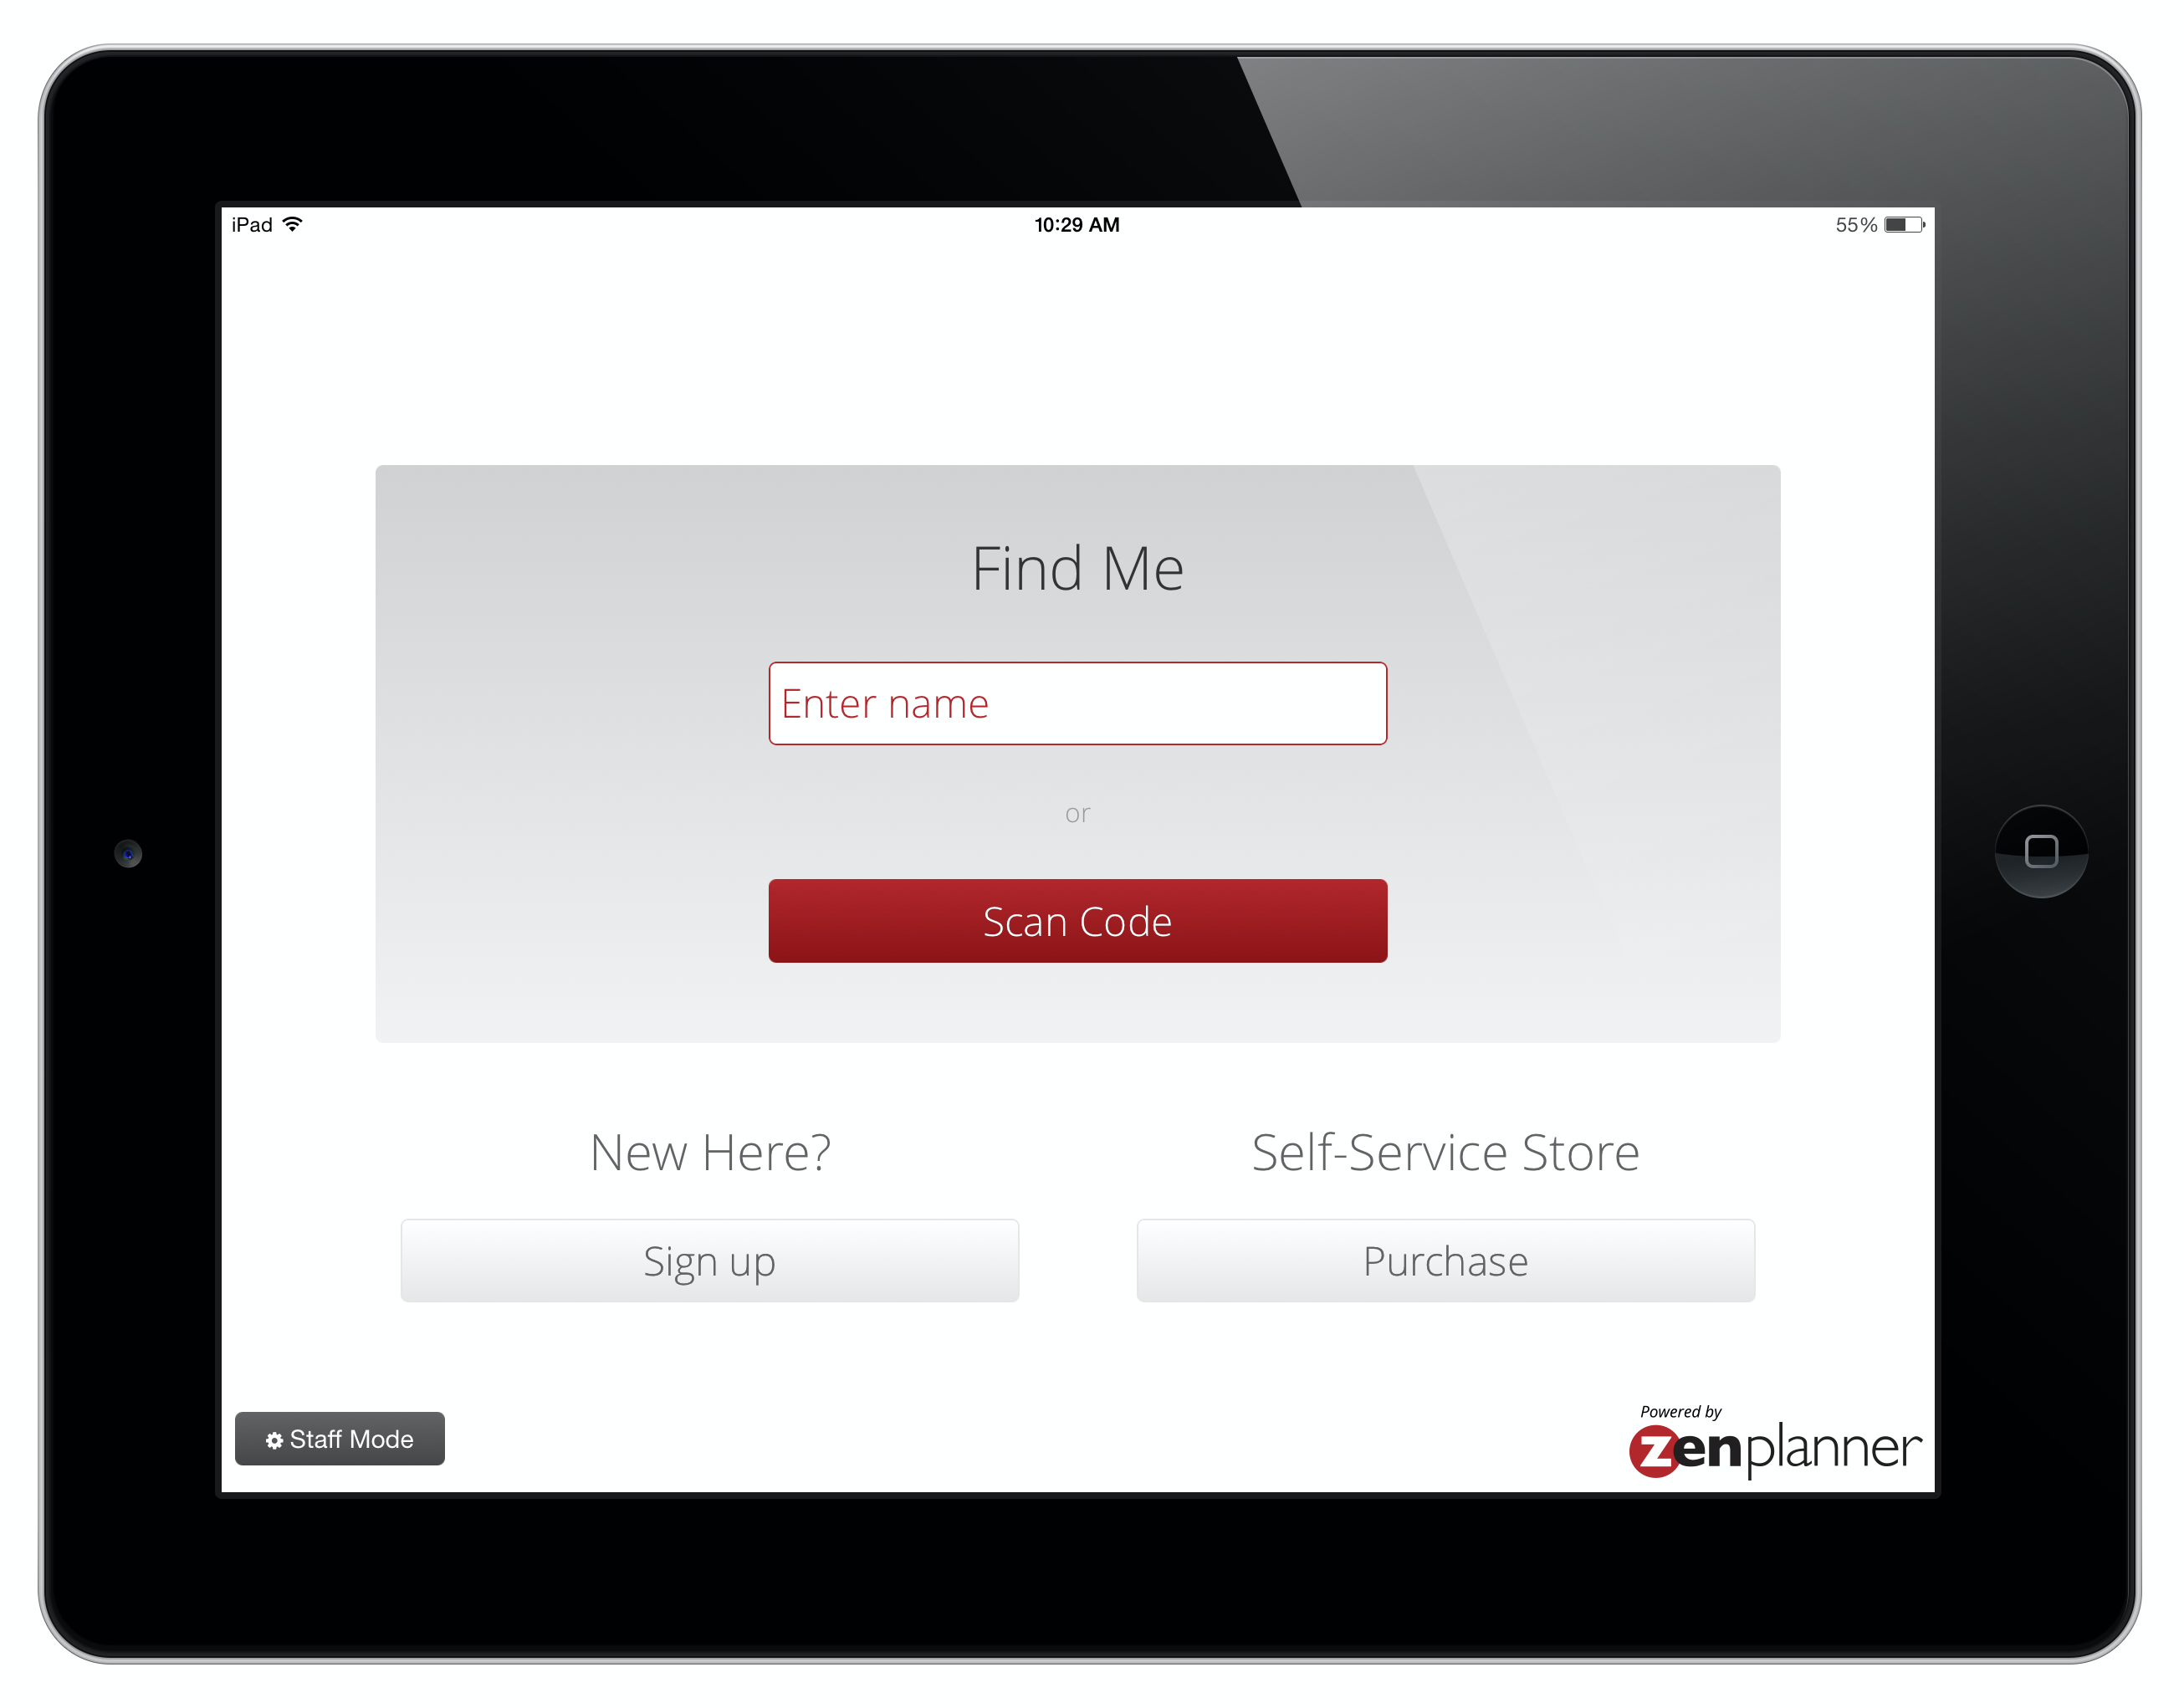 Enhance your members experience in the gym with our Kiosk iPad App